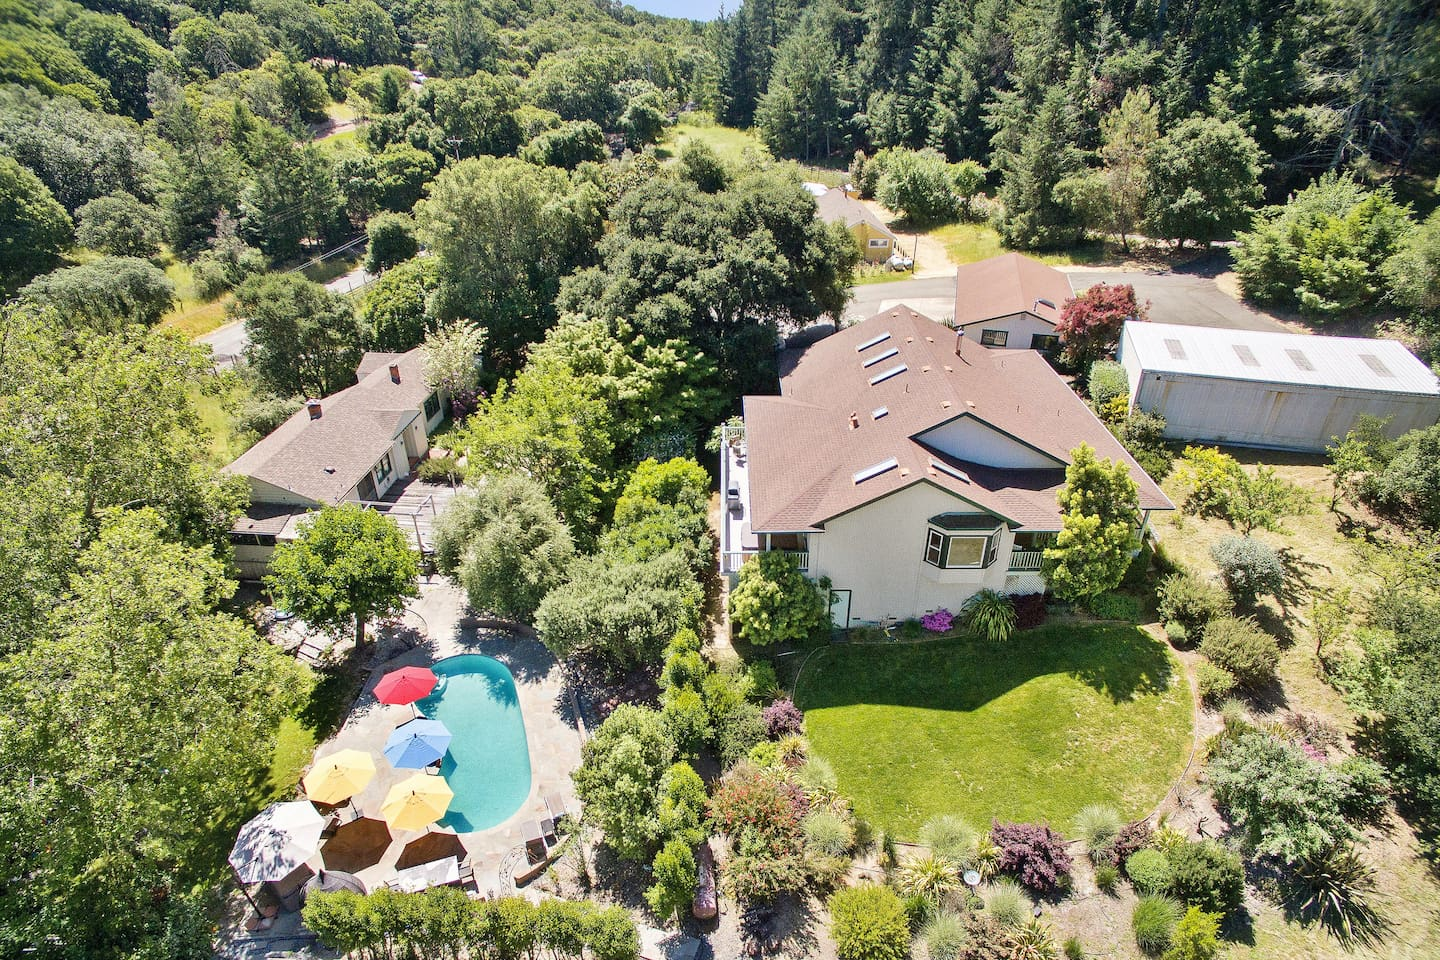 An aerial view of our property. Guests enjoy total privacy in a 8.5 acre park-like setting. The out-buildings are unoccupied, so the entire property is yours to enjoy.